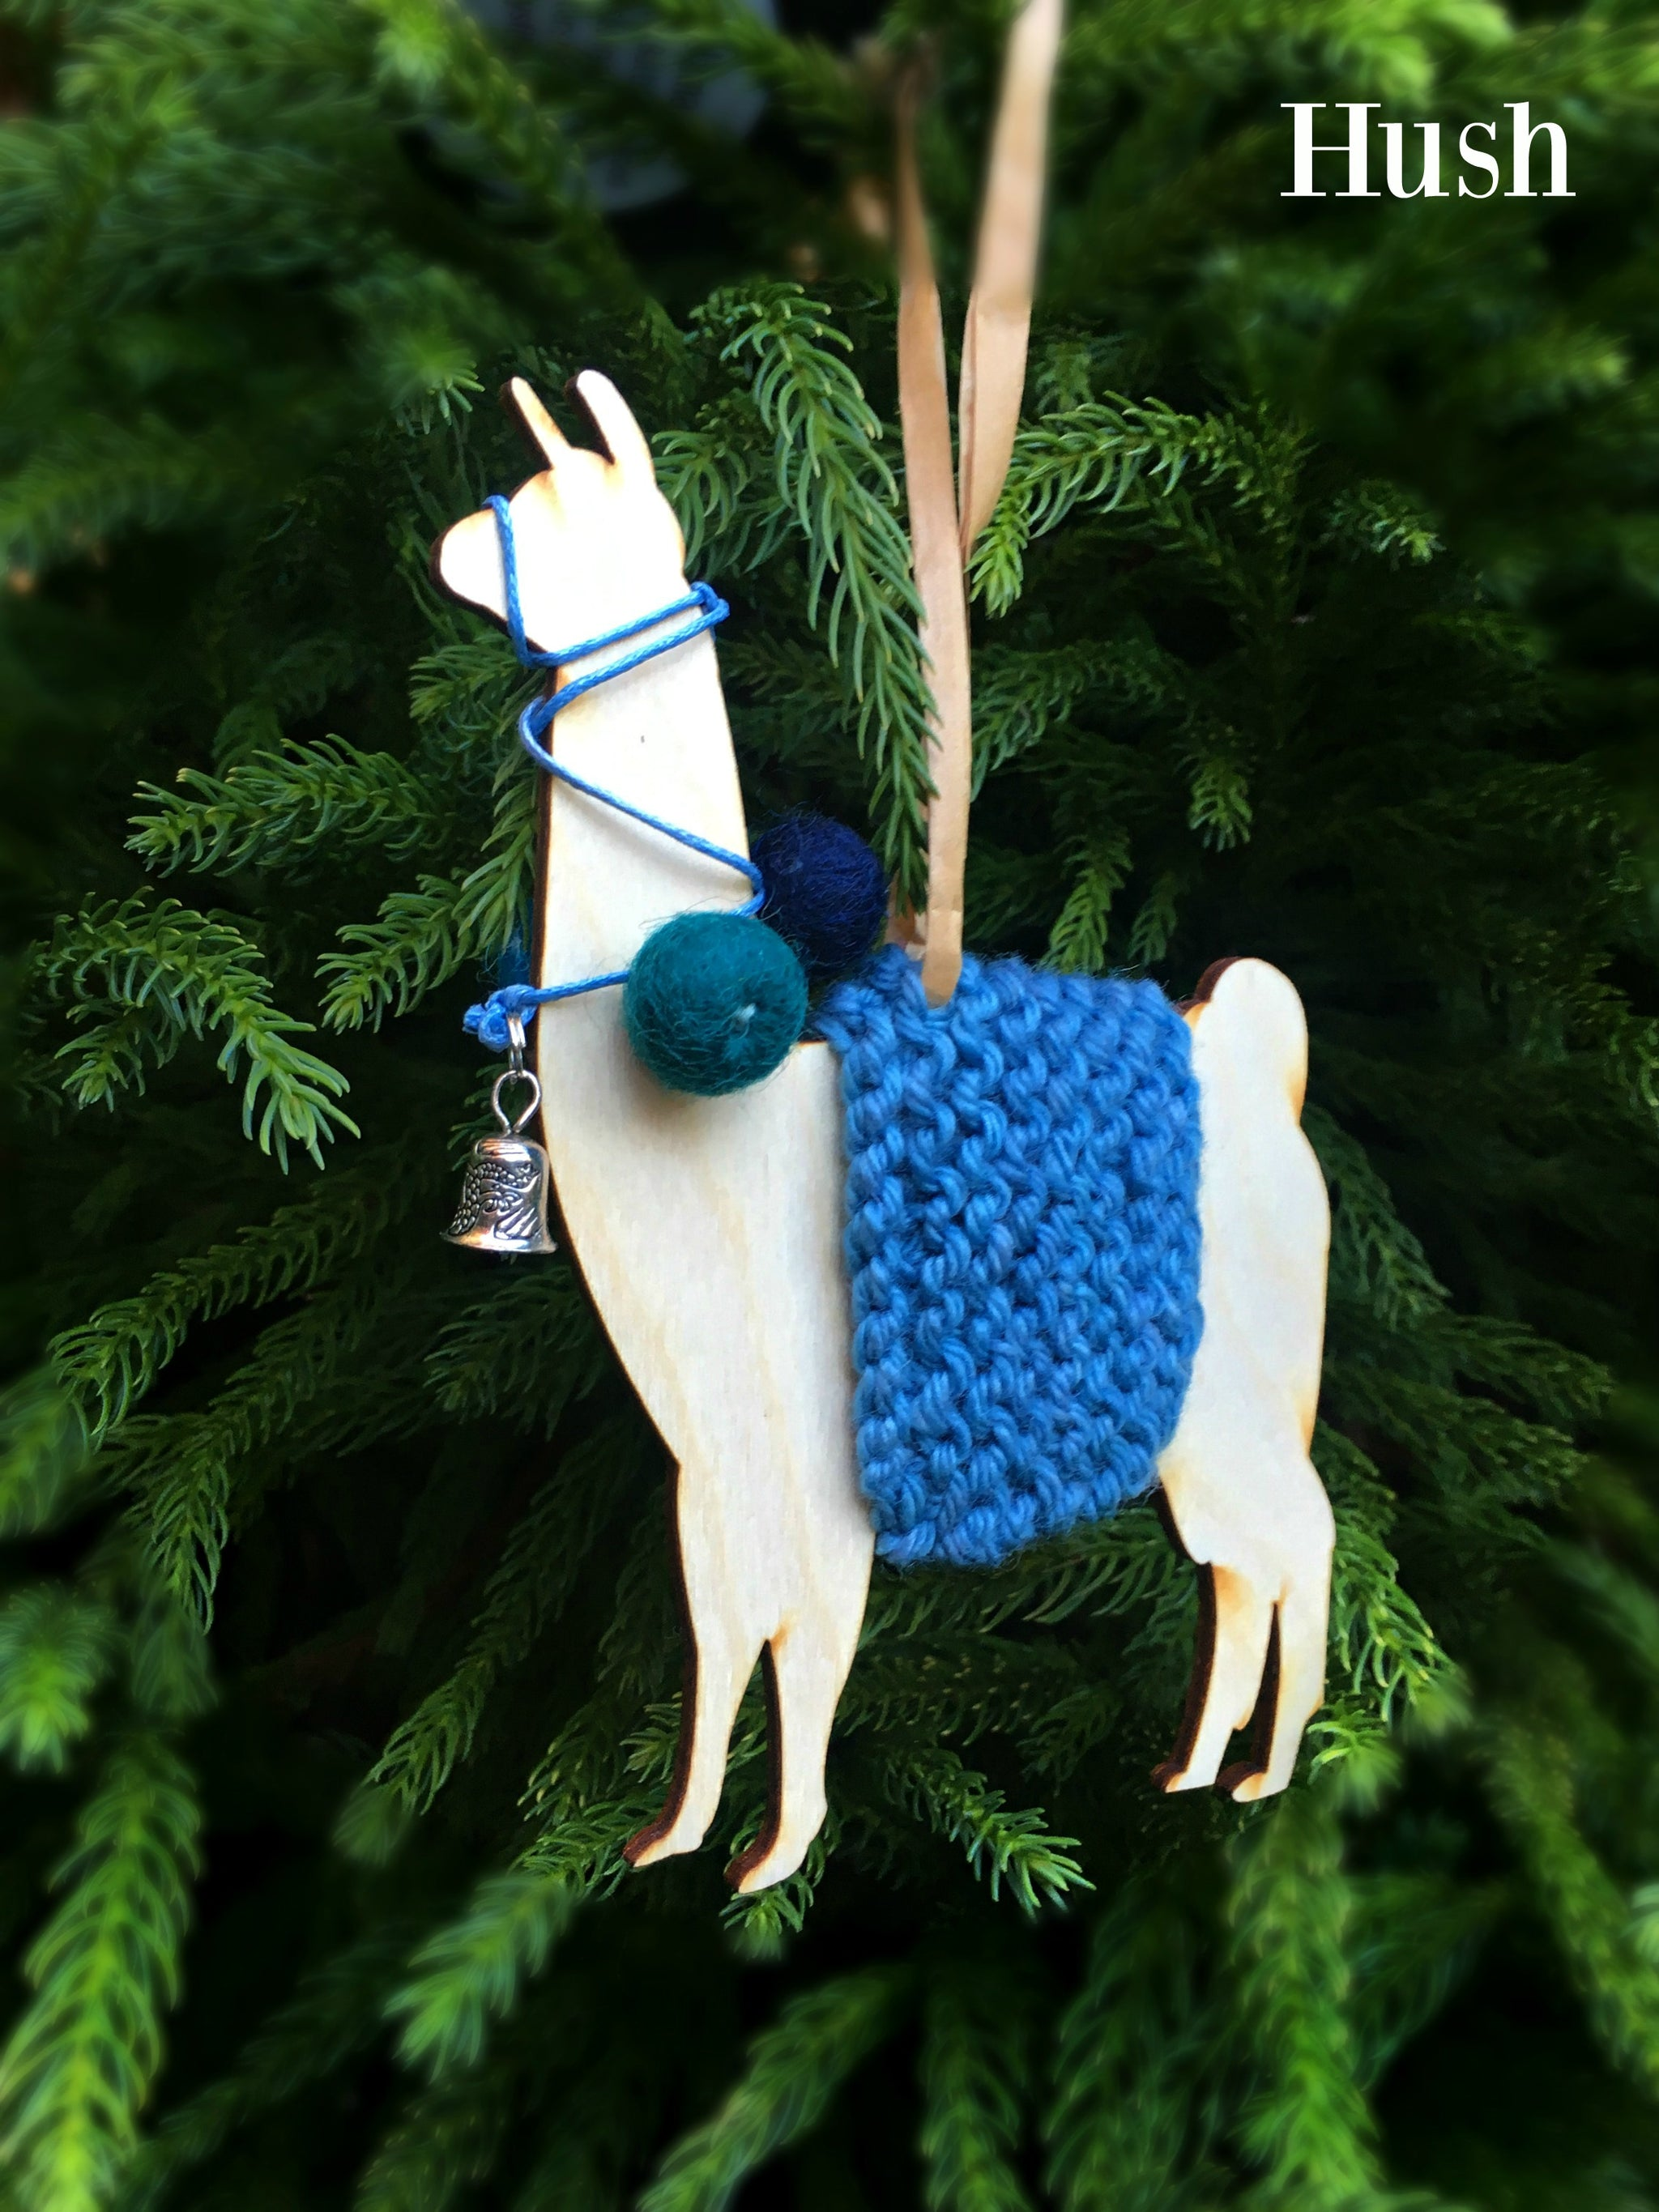 Llama Christmas Decorations.Holiday Decorations Llamas In Traditional Dress